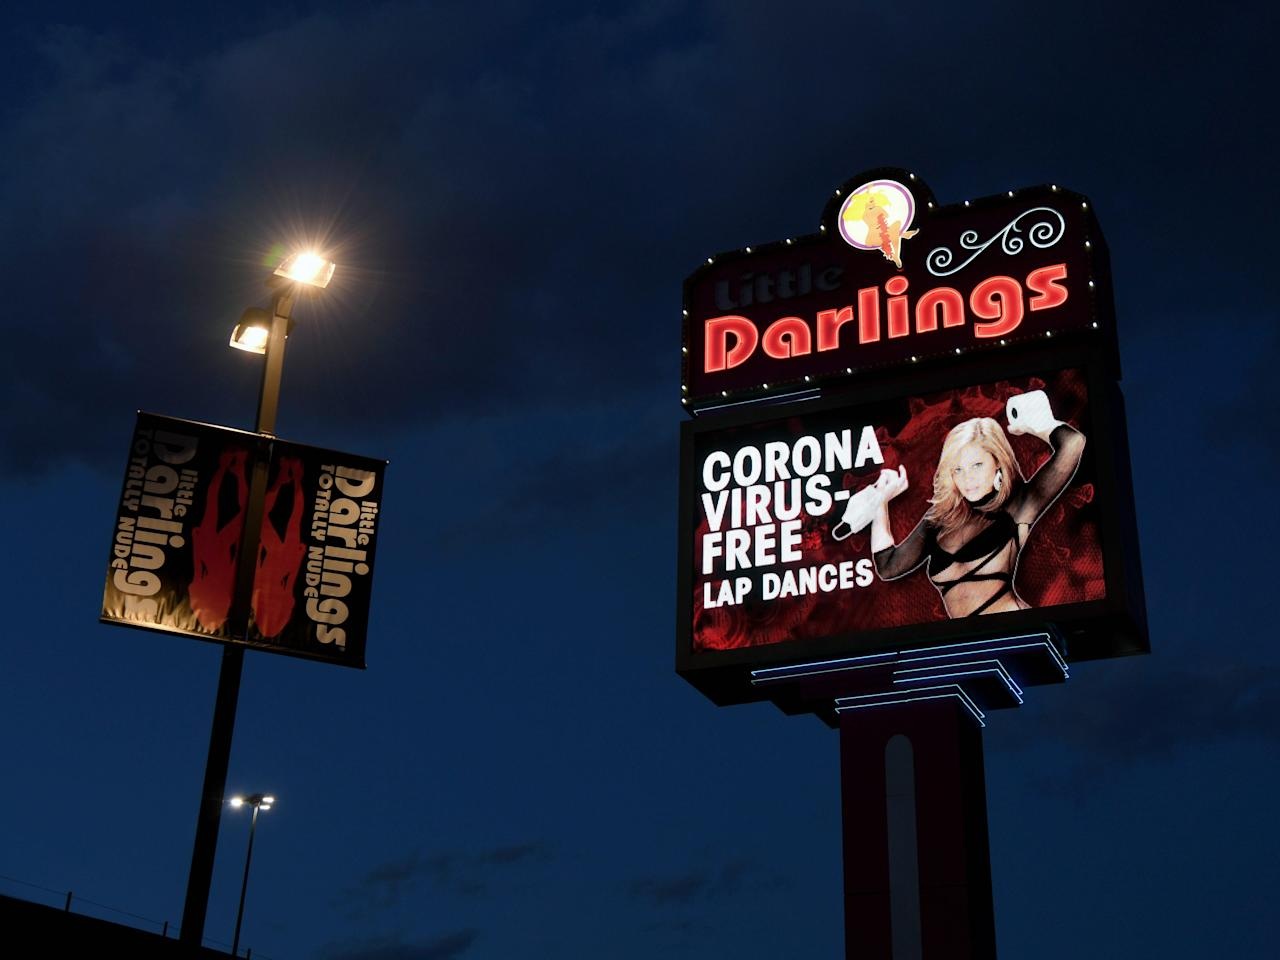 A Las Vegas strip club is offering drive-thru shows, nude hand sanitizer wrestling, and 'coronavirus-free' lap dances